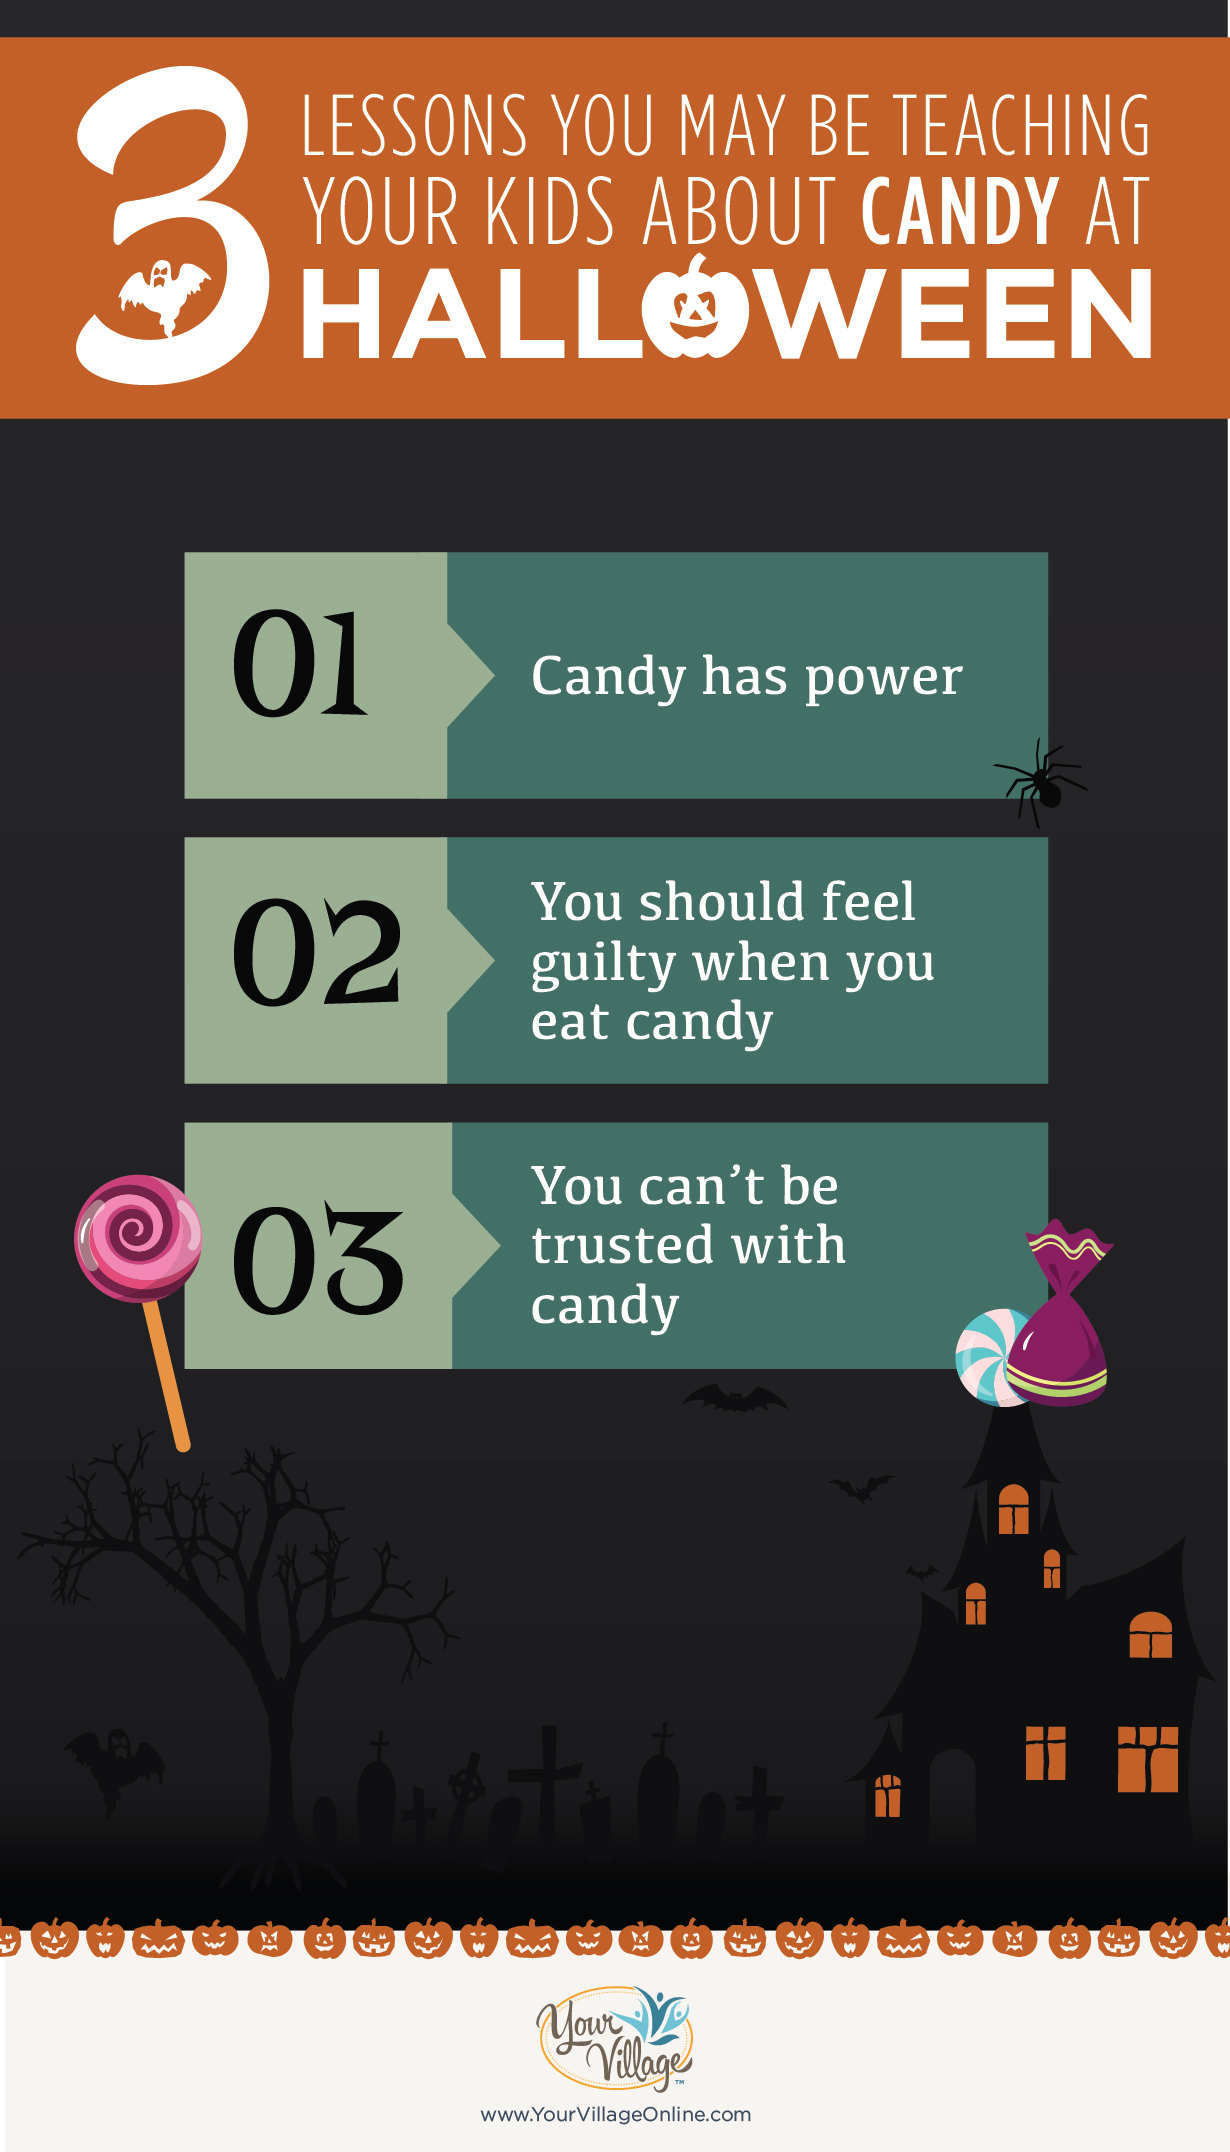 3_lessons_halloween_candy-01